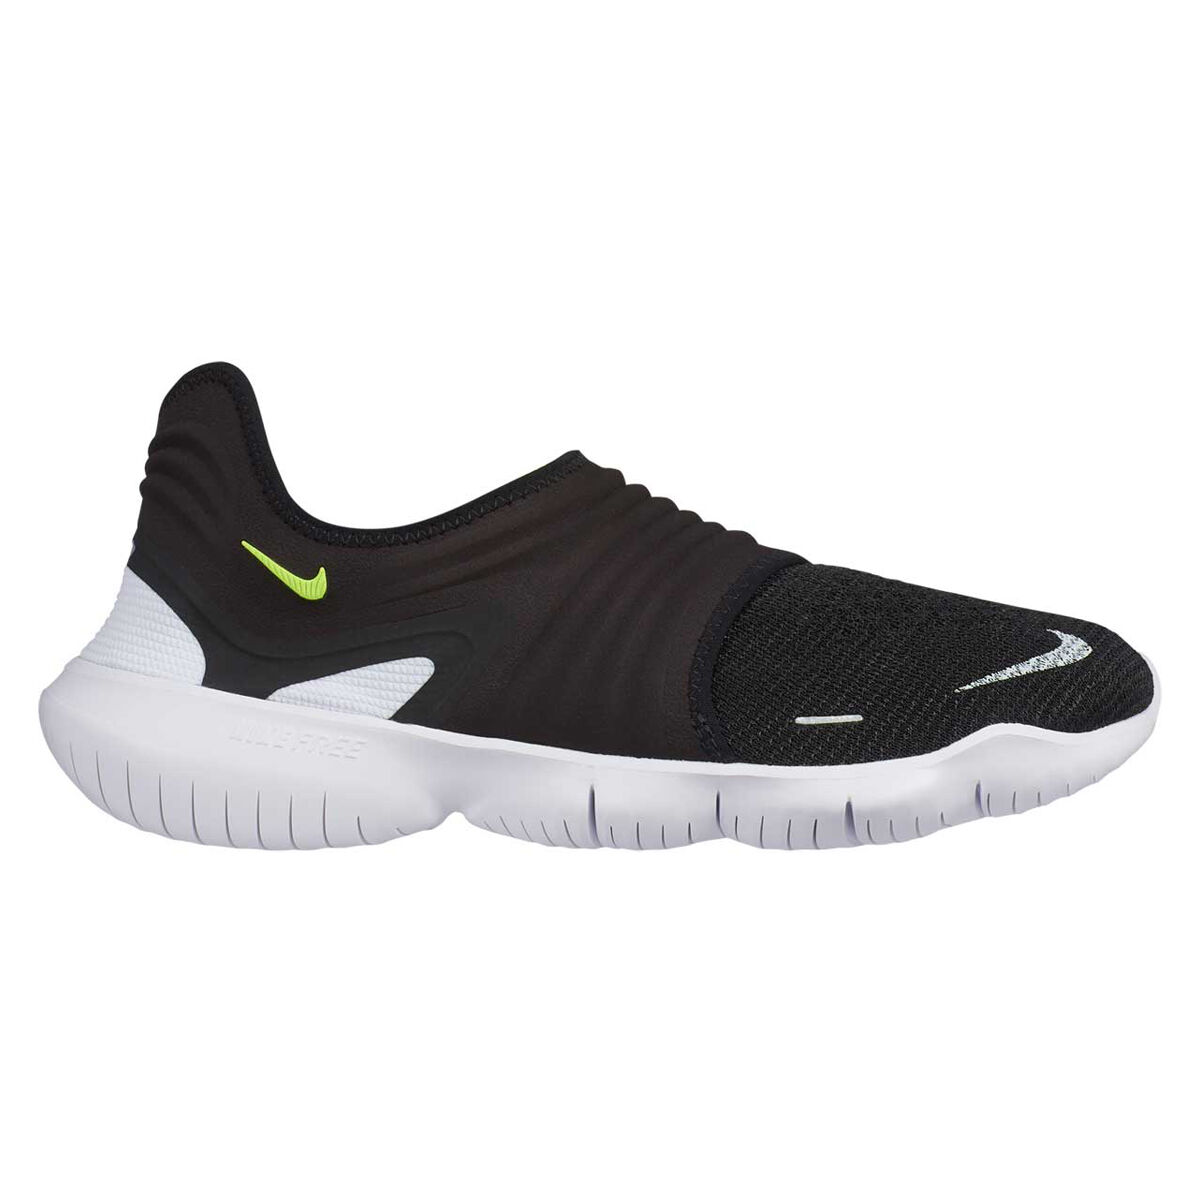 Nike Free RN Flyknit 3.0 Mens Running Shoes